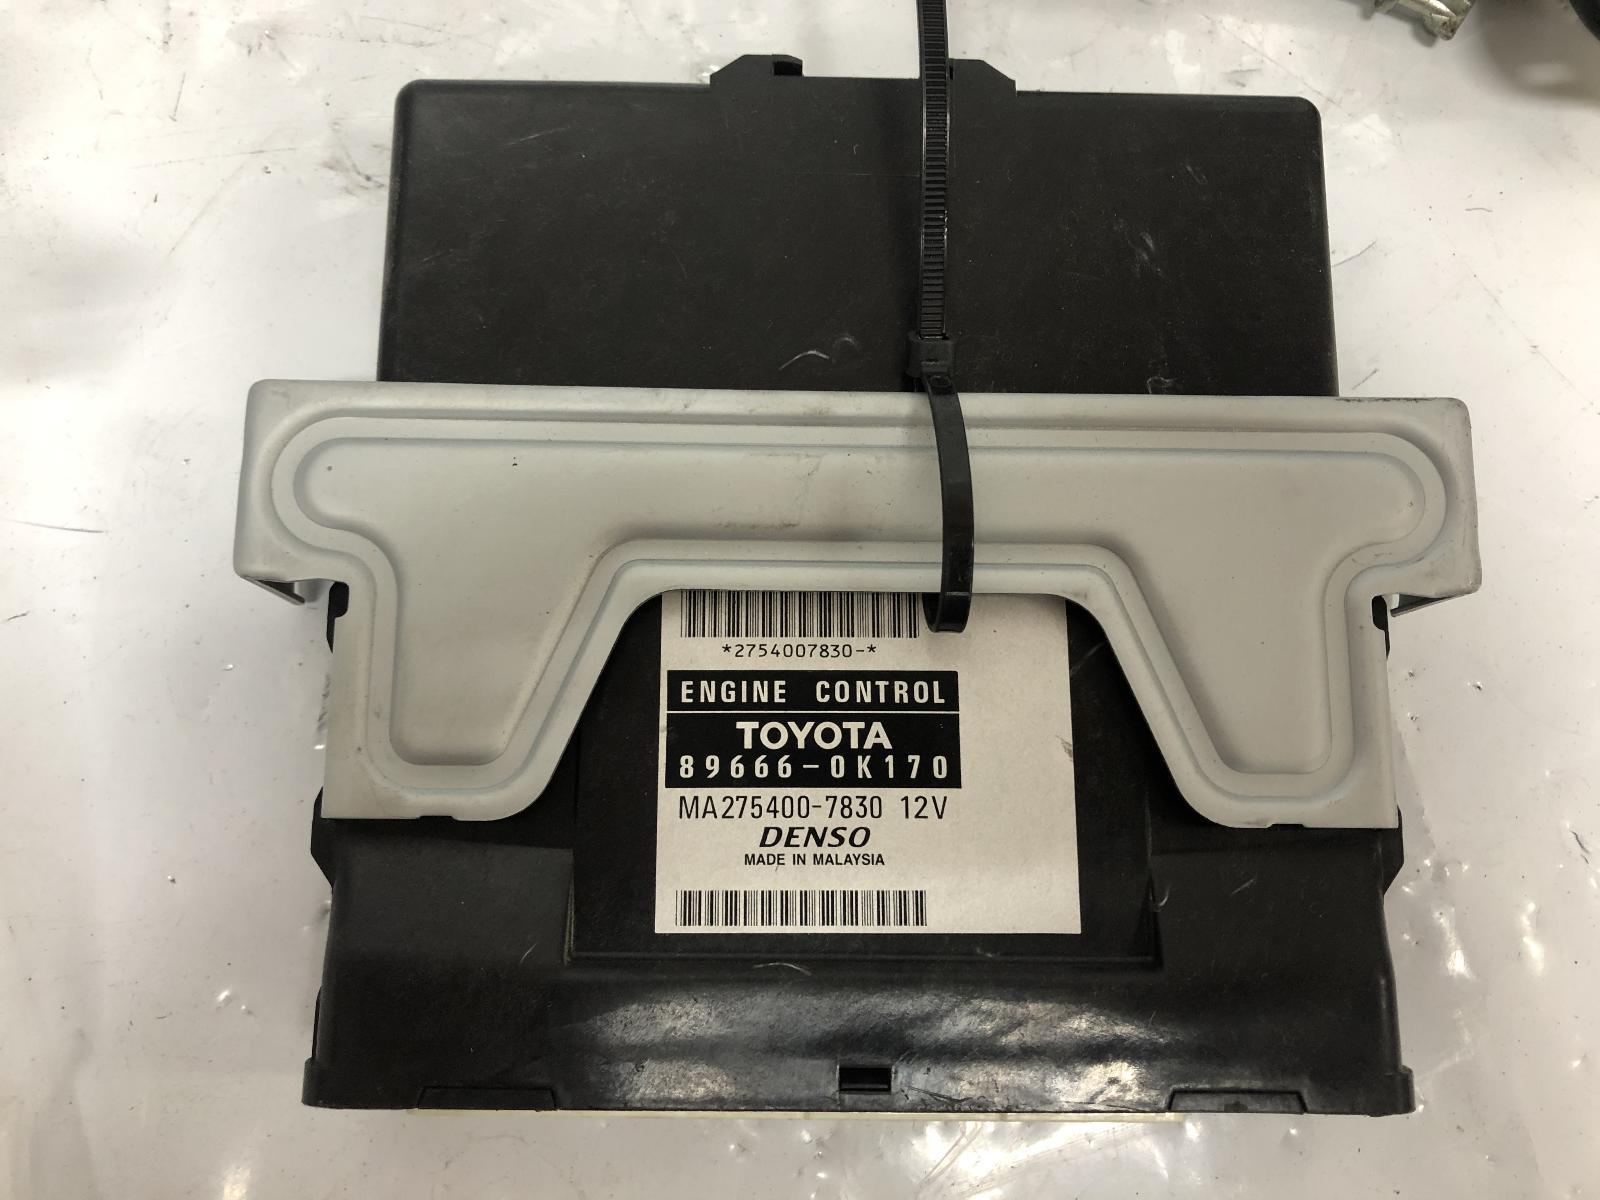 TOYOTA HILUX, Ecu, ENGINE ECU, 2.7, 2TR-FE, PETROL, MANUAL, P/N 89666-0K170, SEC SET (ECU/IMM/READER/KEY), 03/05-08/15